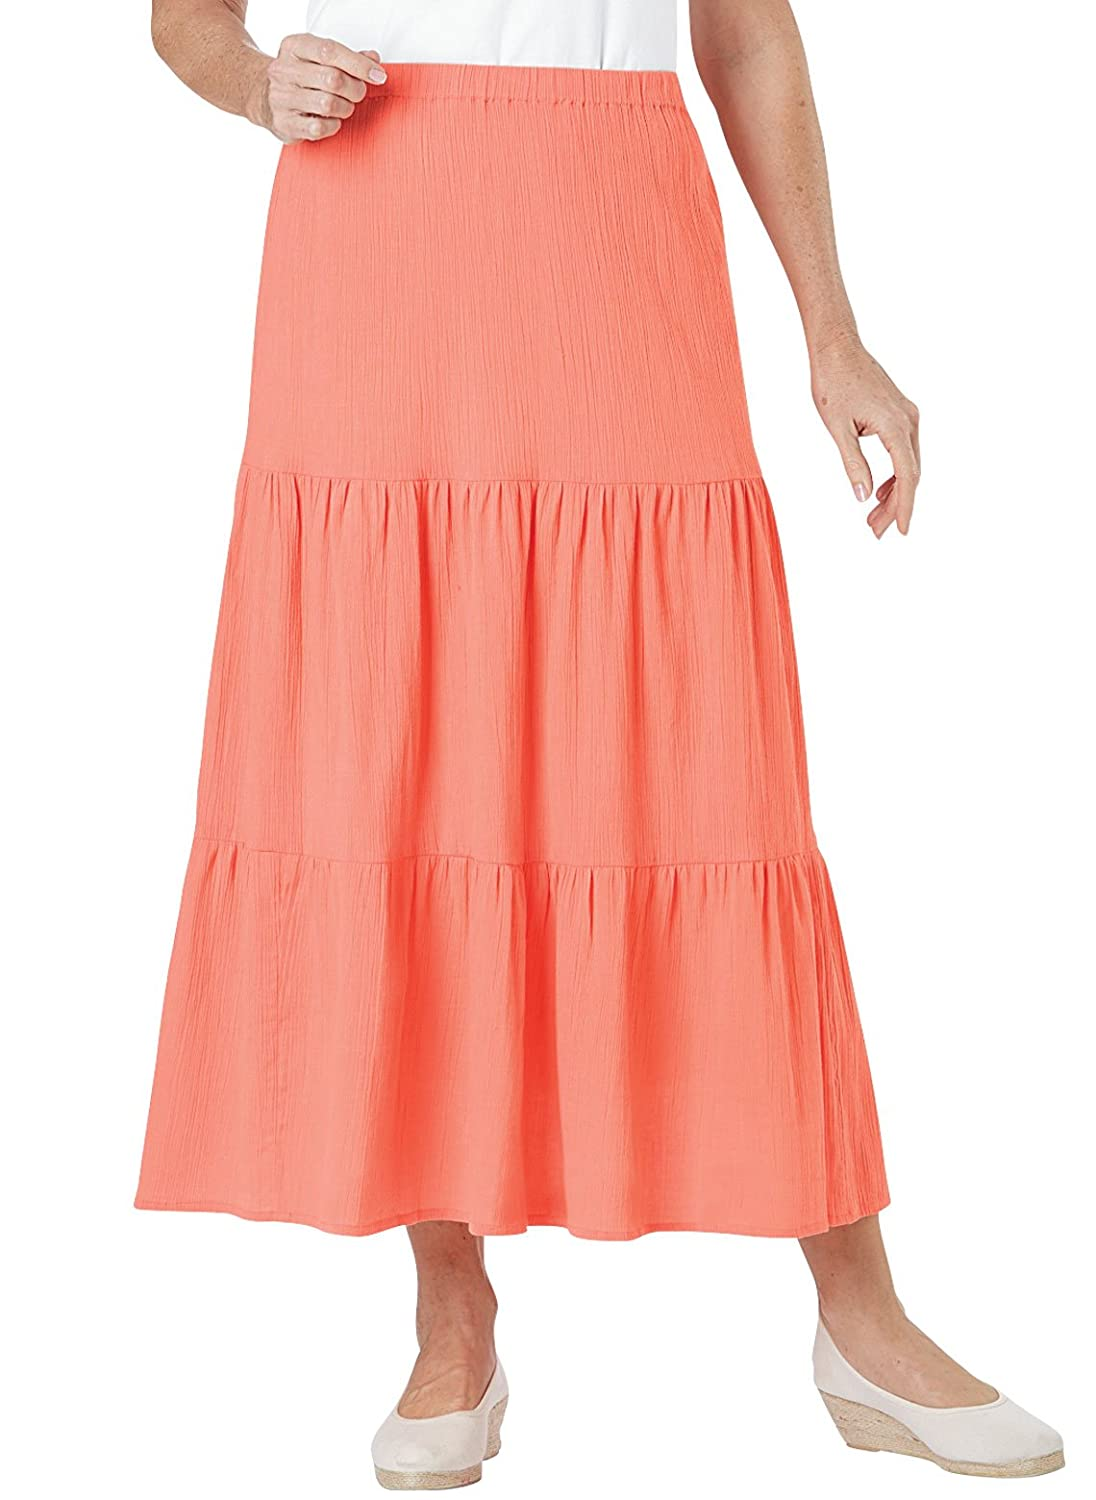 9dcf3a97ad4 This light and comfortable crinkle-cotton skirt features a slimming tiered  design. Pull-on skirt with full elastic waist. Machine wash and dry.  Imported.